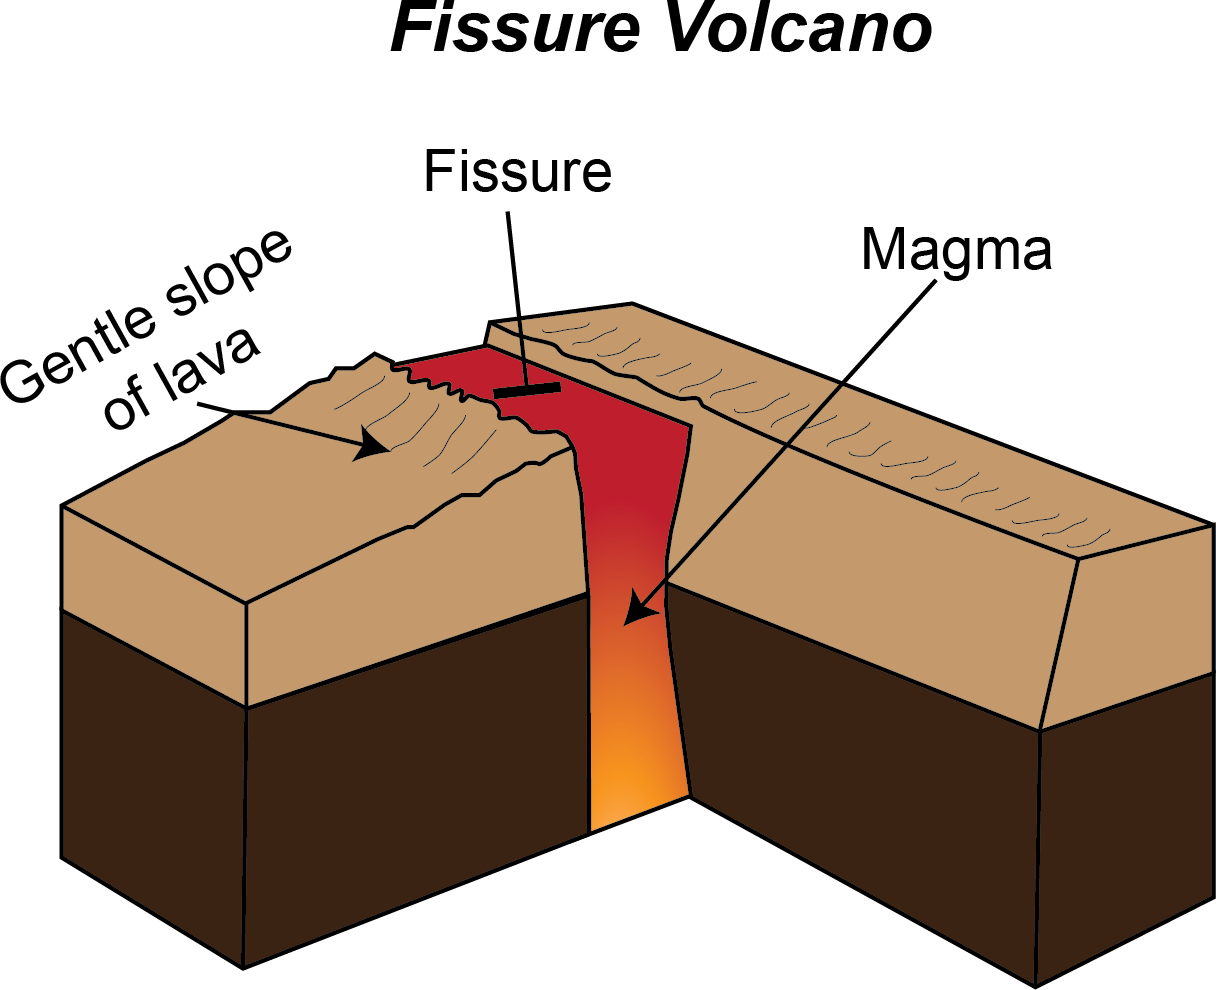 Fissure Volcanoes Have Linear Volcanic Vents Through Which